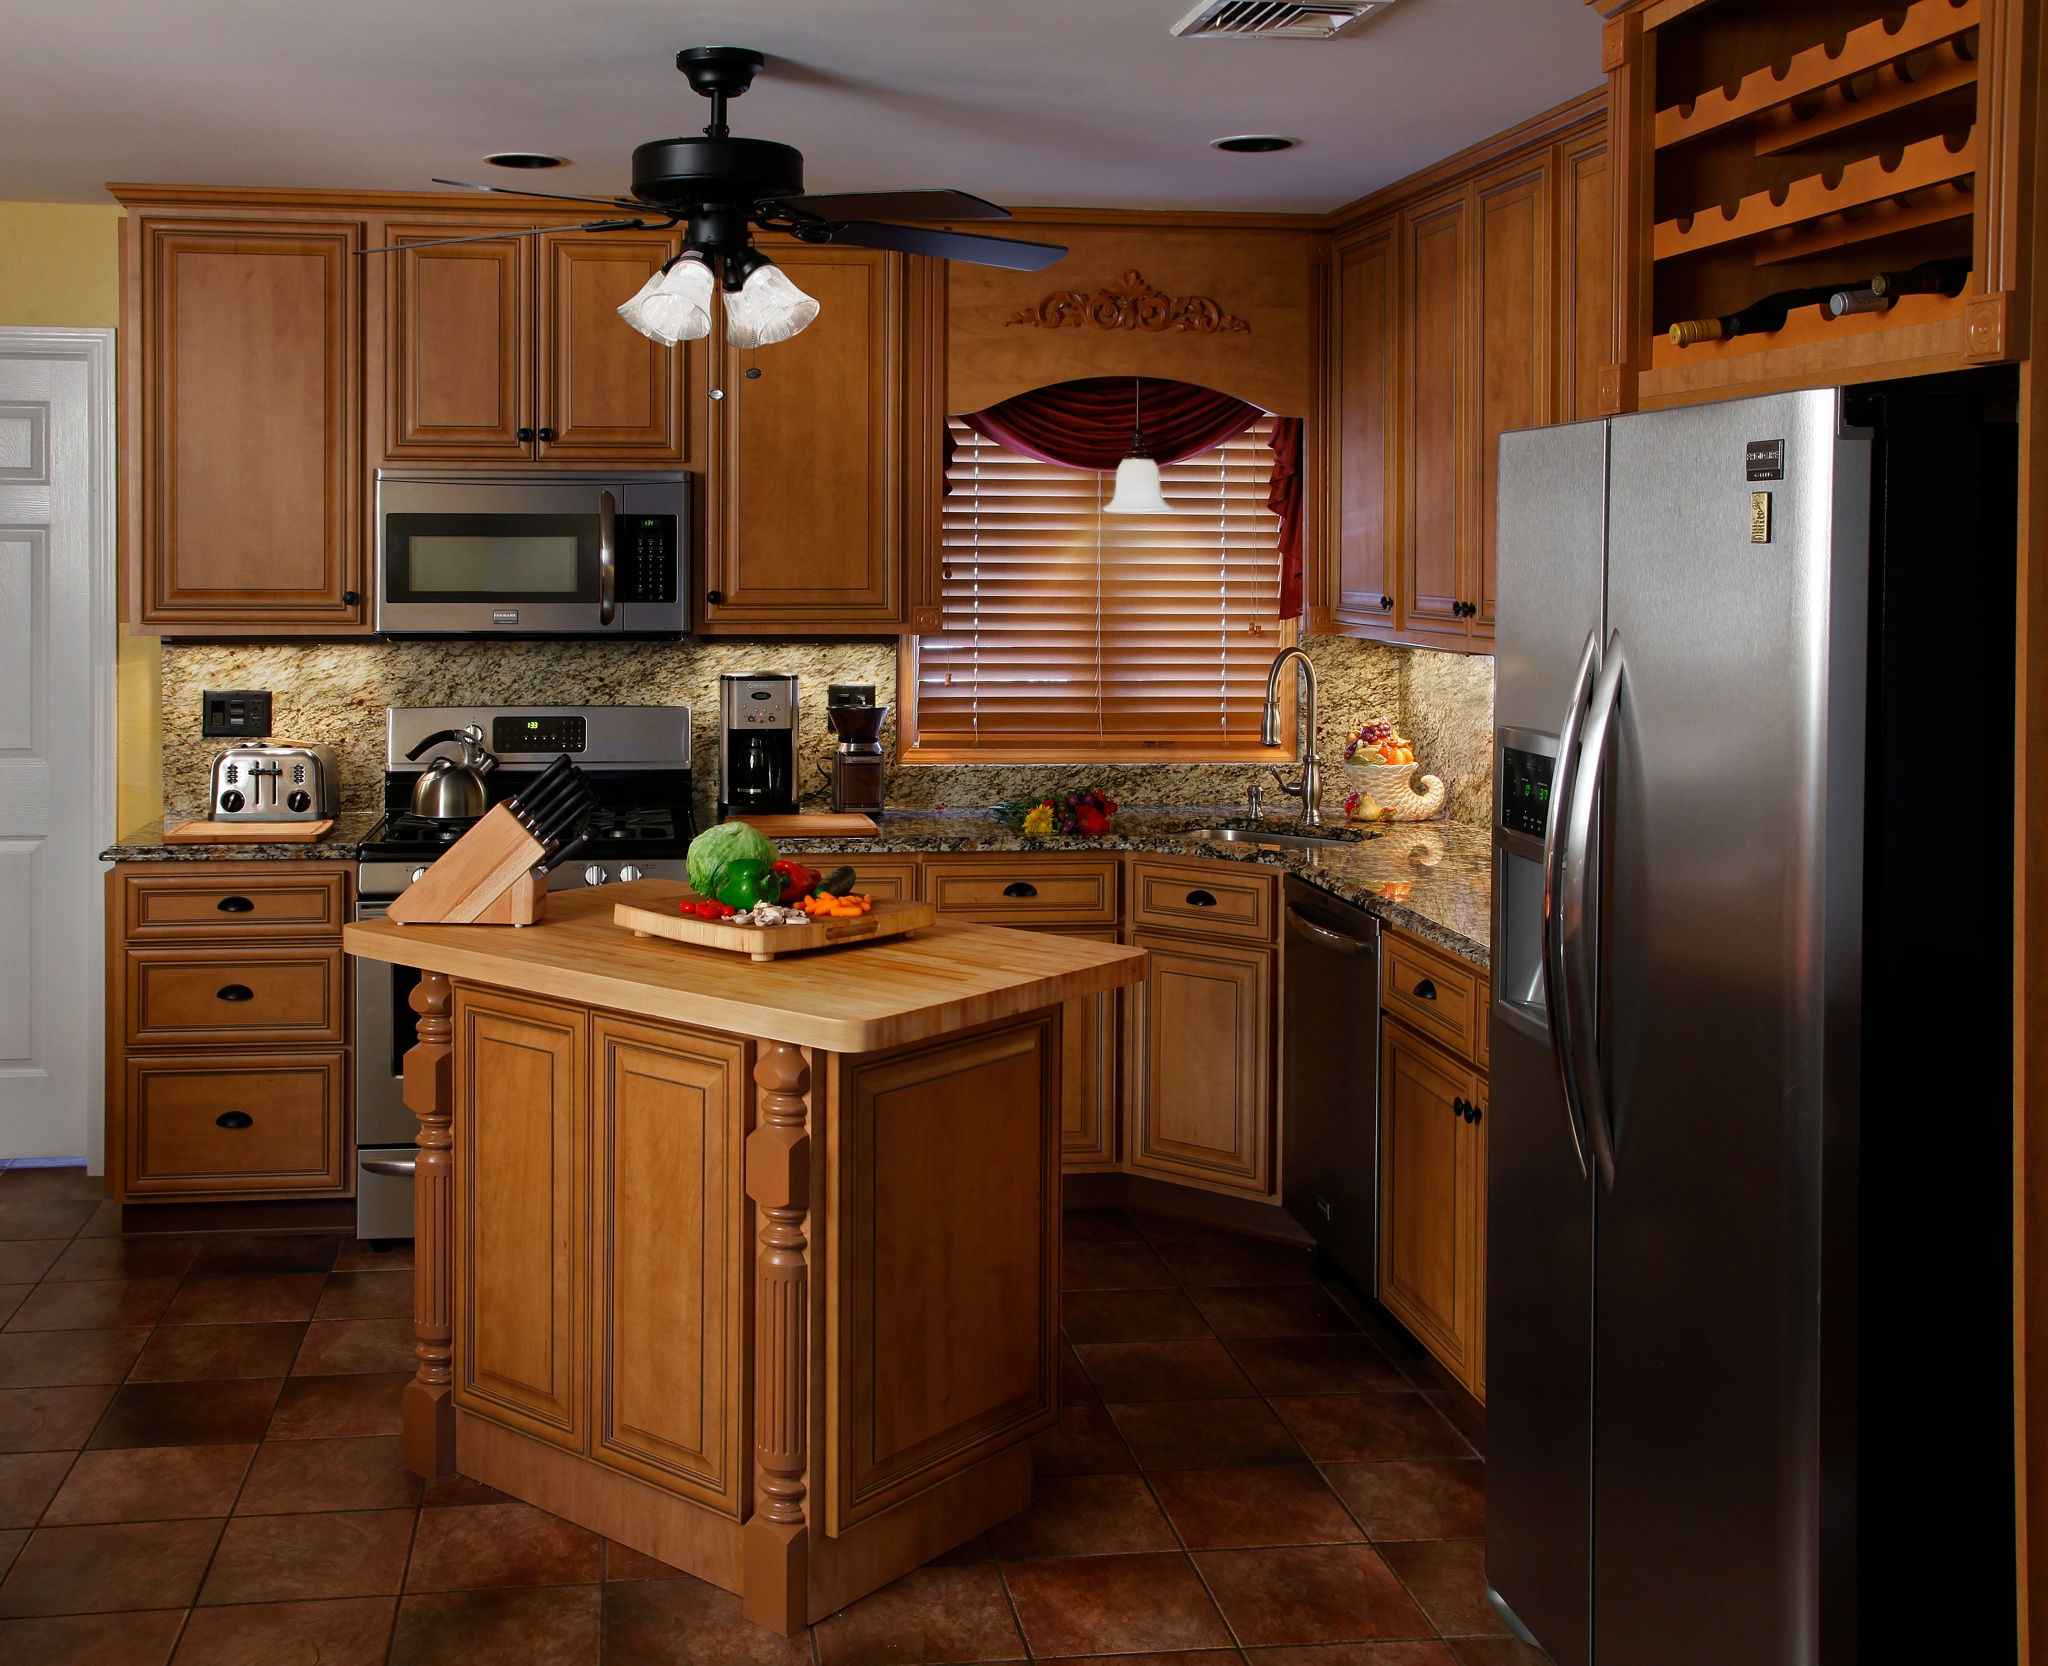 How To Clean The Kitchen Cabinets How To Clean Your Refaced Kitchen Cabinets